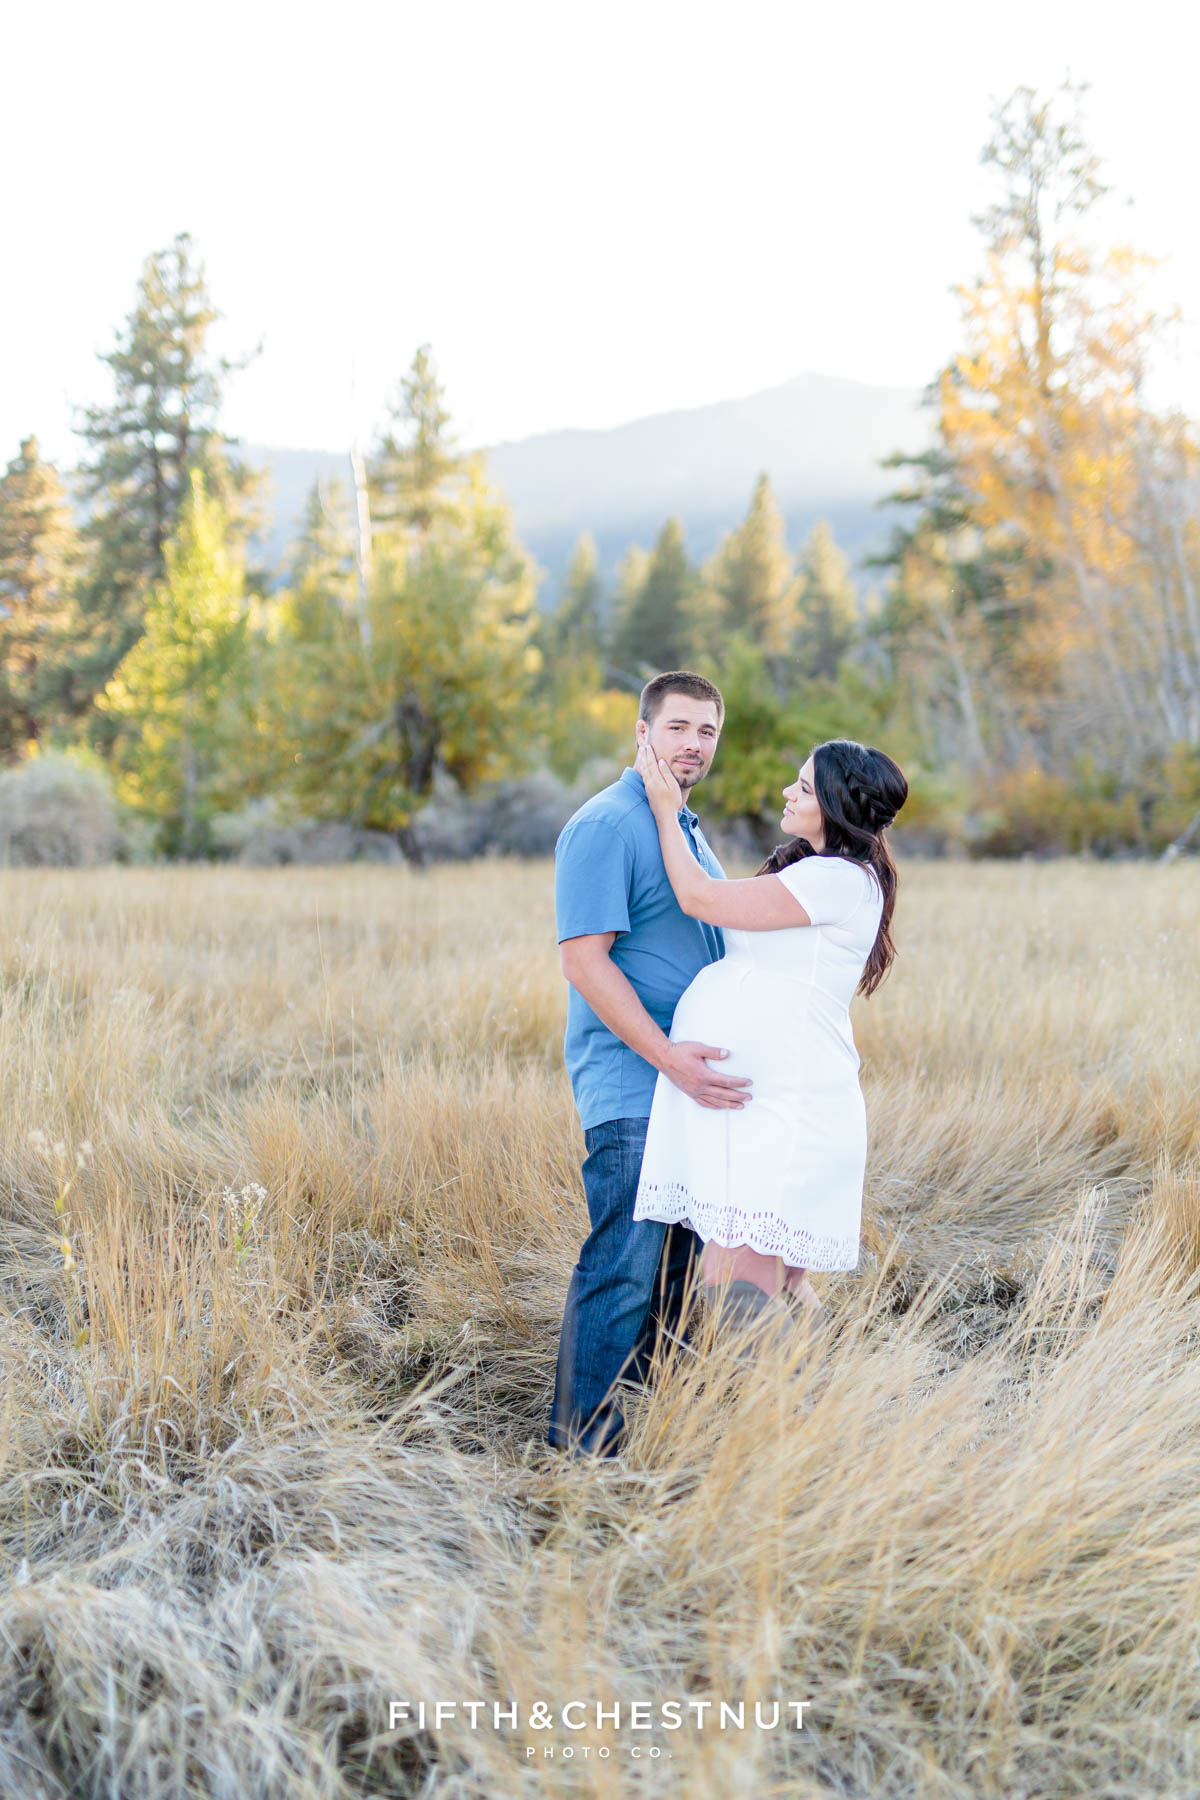 Expecting couple embrace as husband looks at camera while his wife looks lovingly towards him